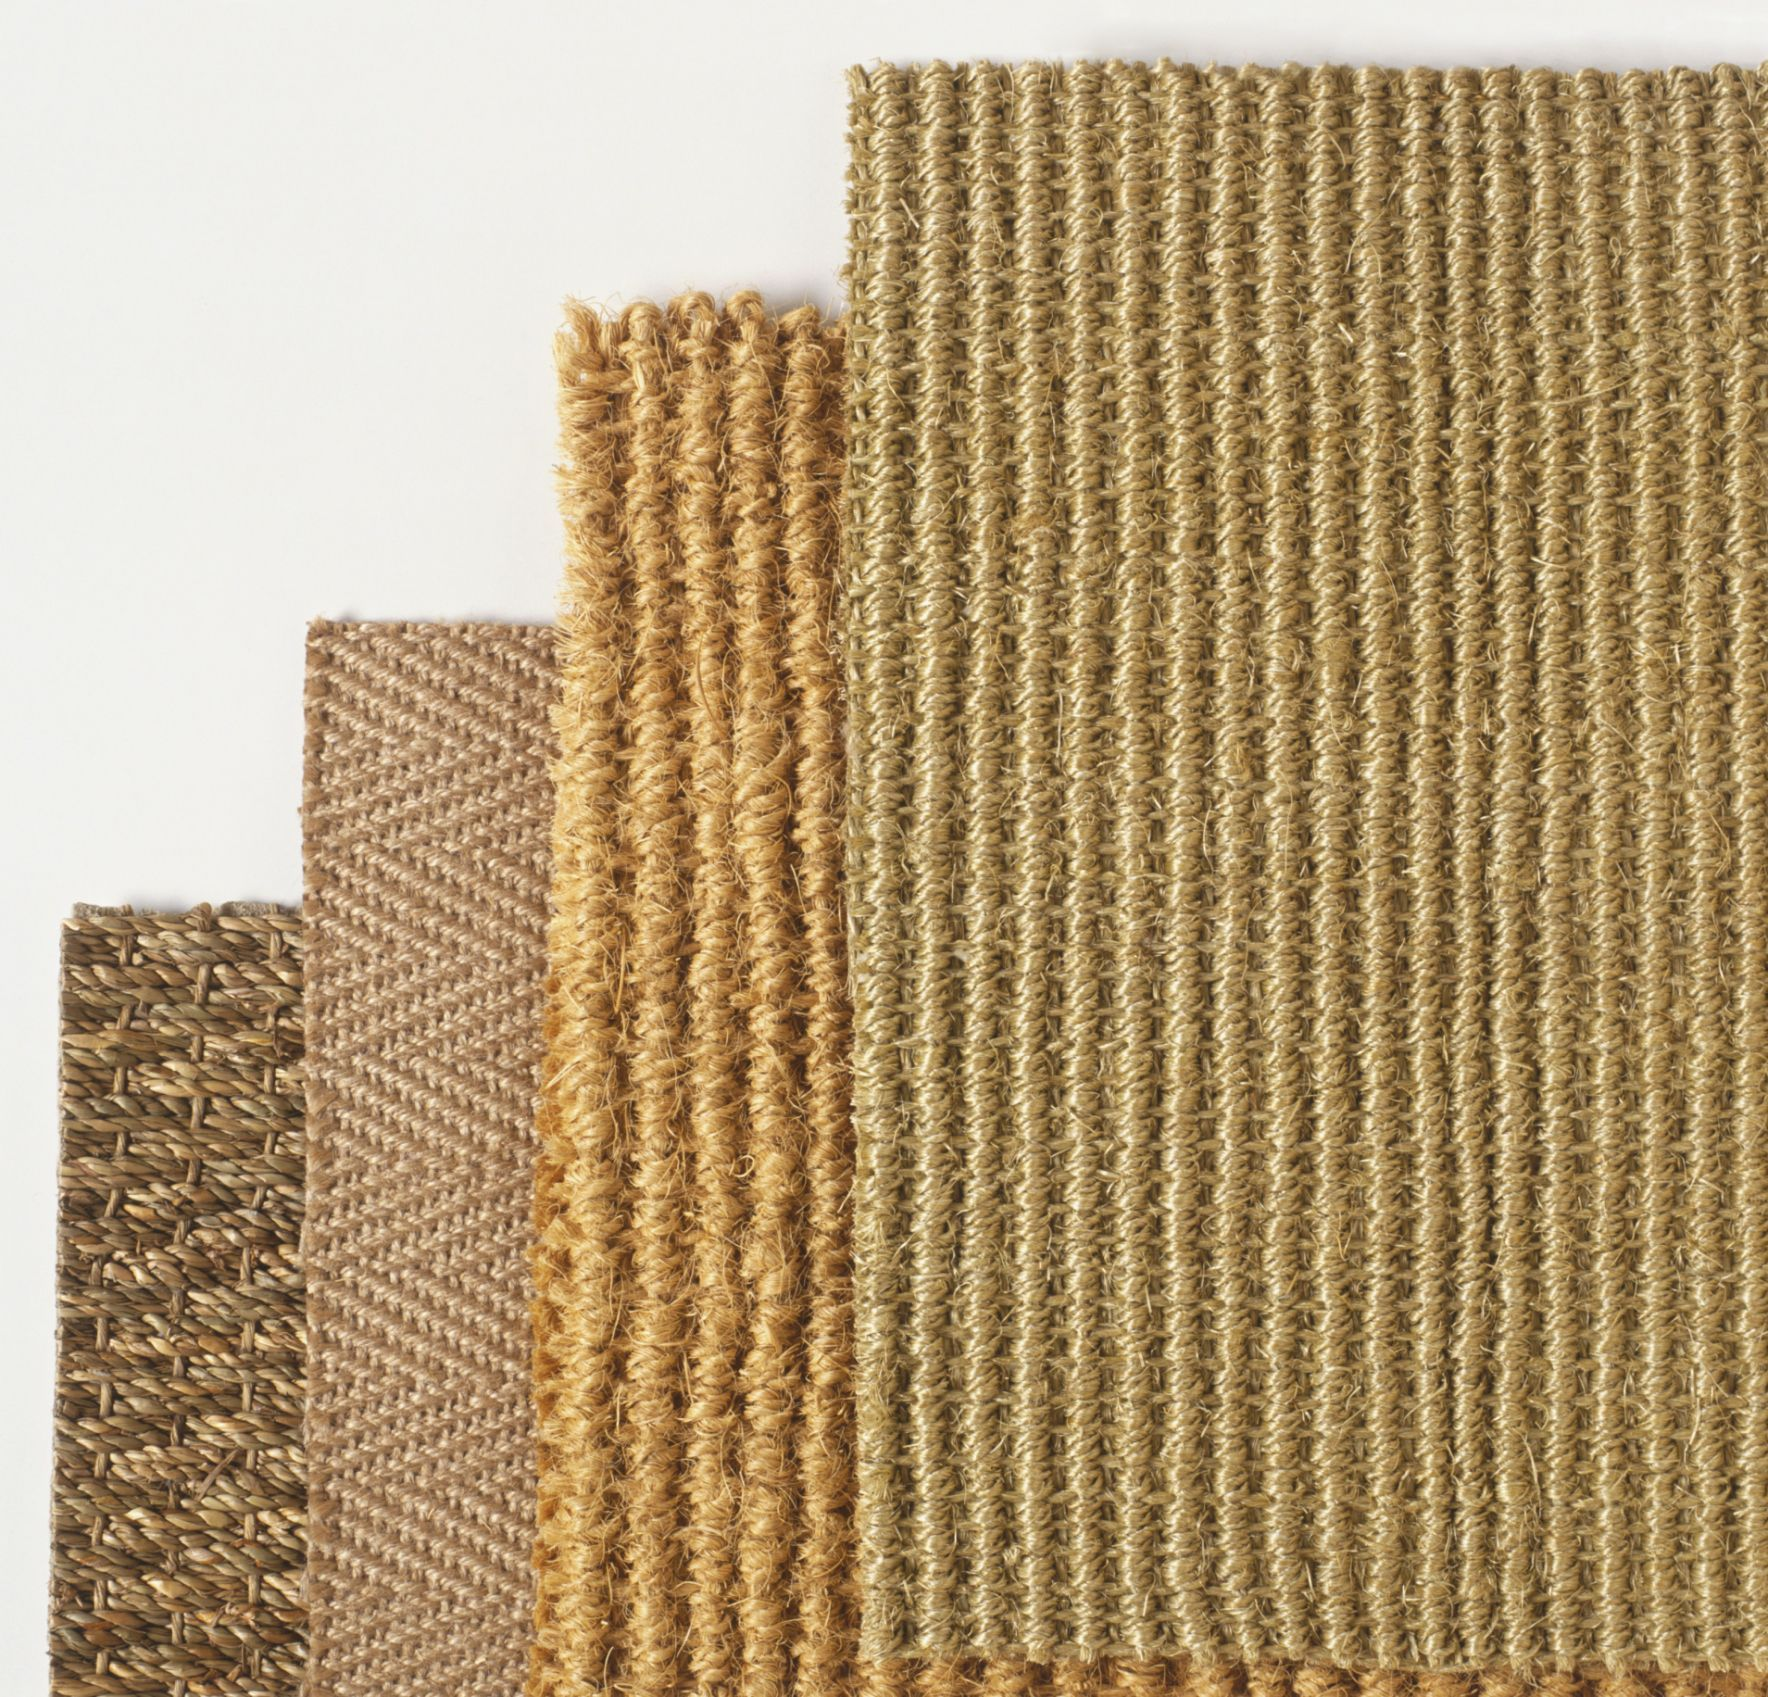 Comparing Synthetic And Natural Carpet Fibers Synthetic Carpet Natural Carpet Buying Carpet